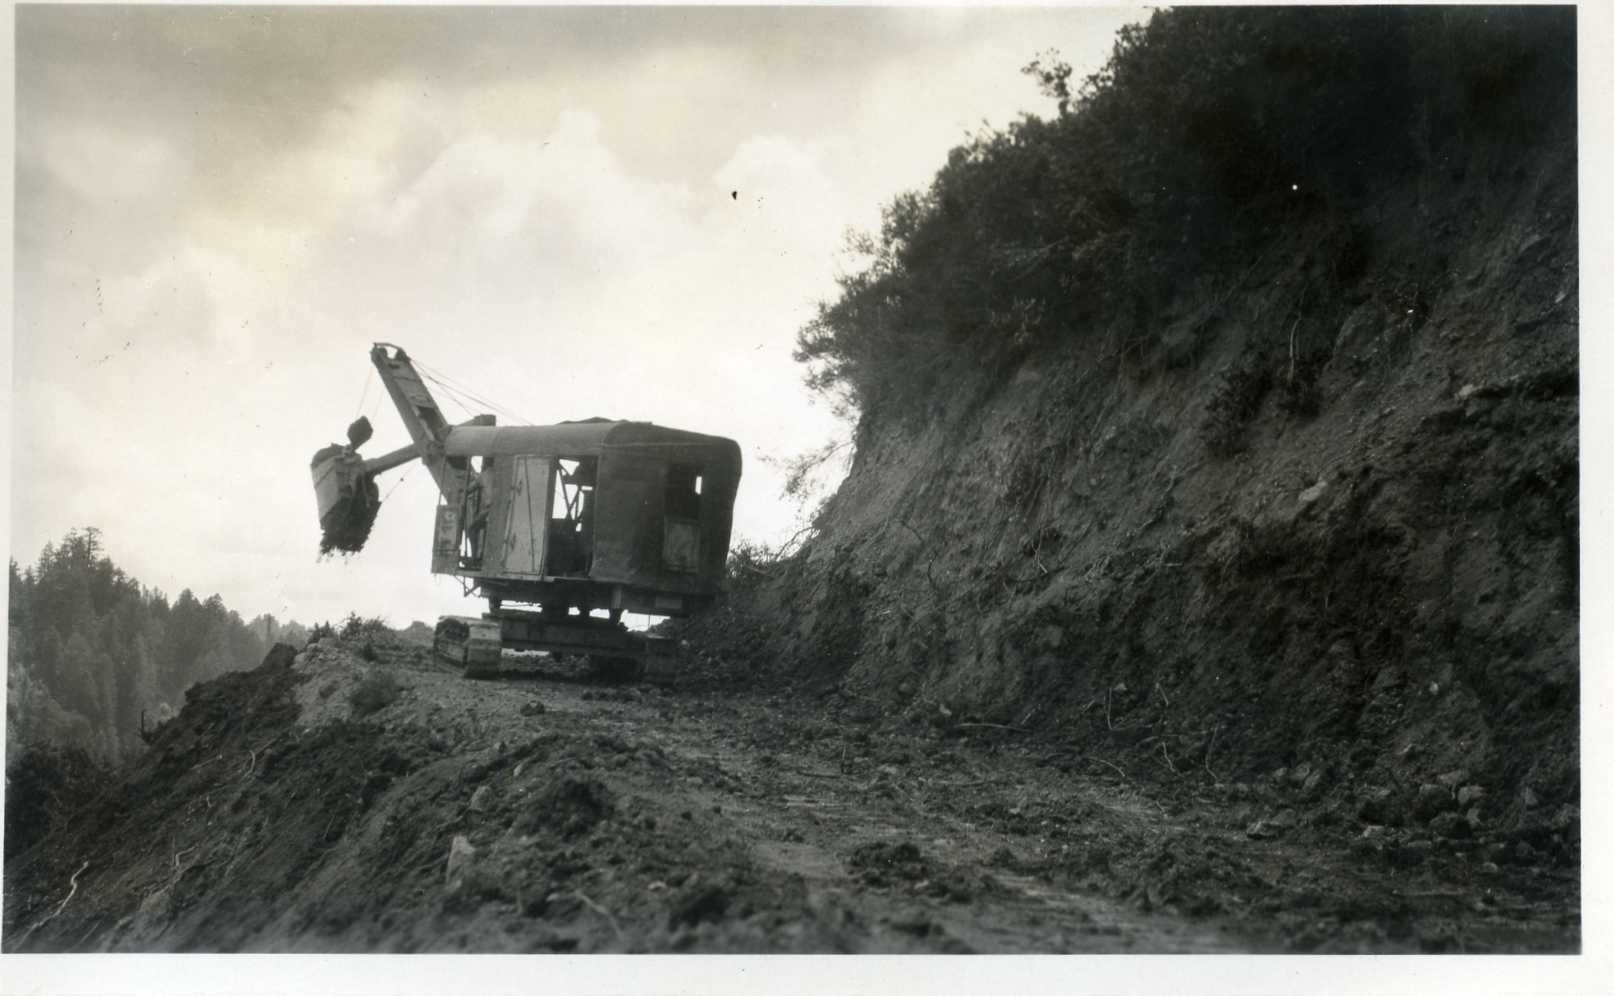 1930 County Steam Shovel Opening the Road to Camp Loma